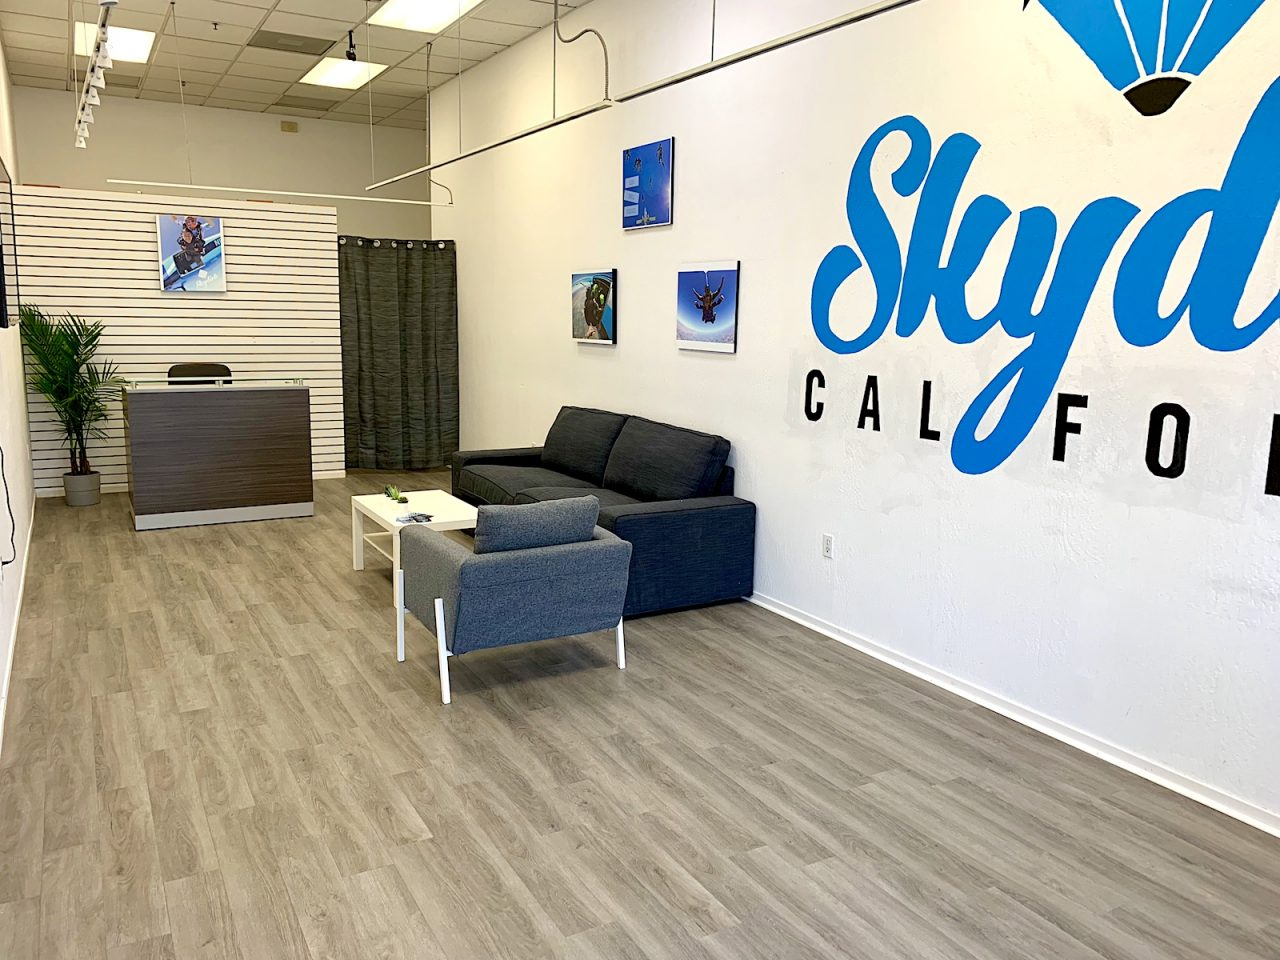 Skydive California interior office